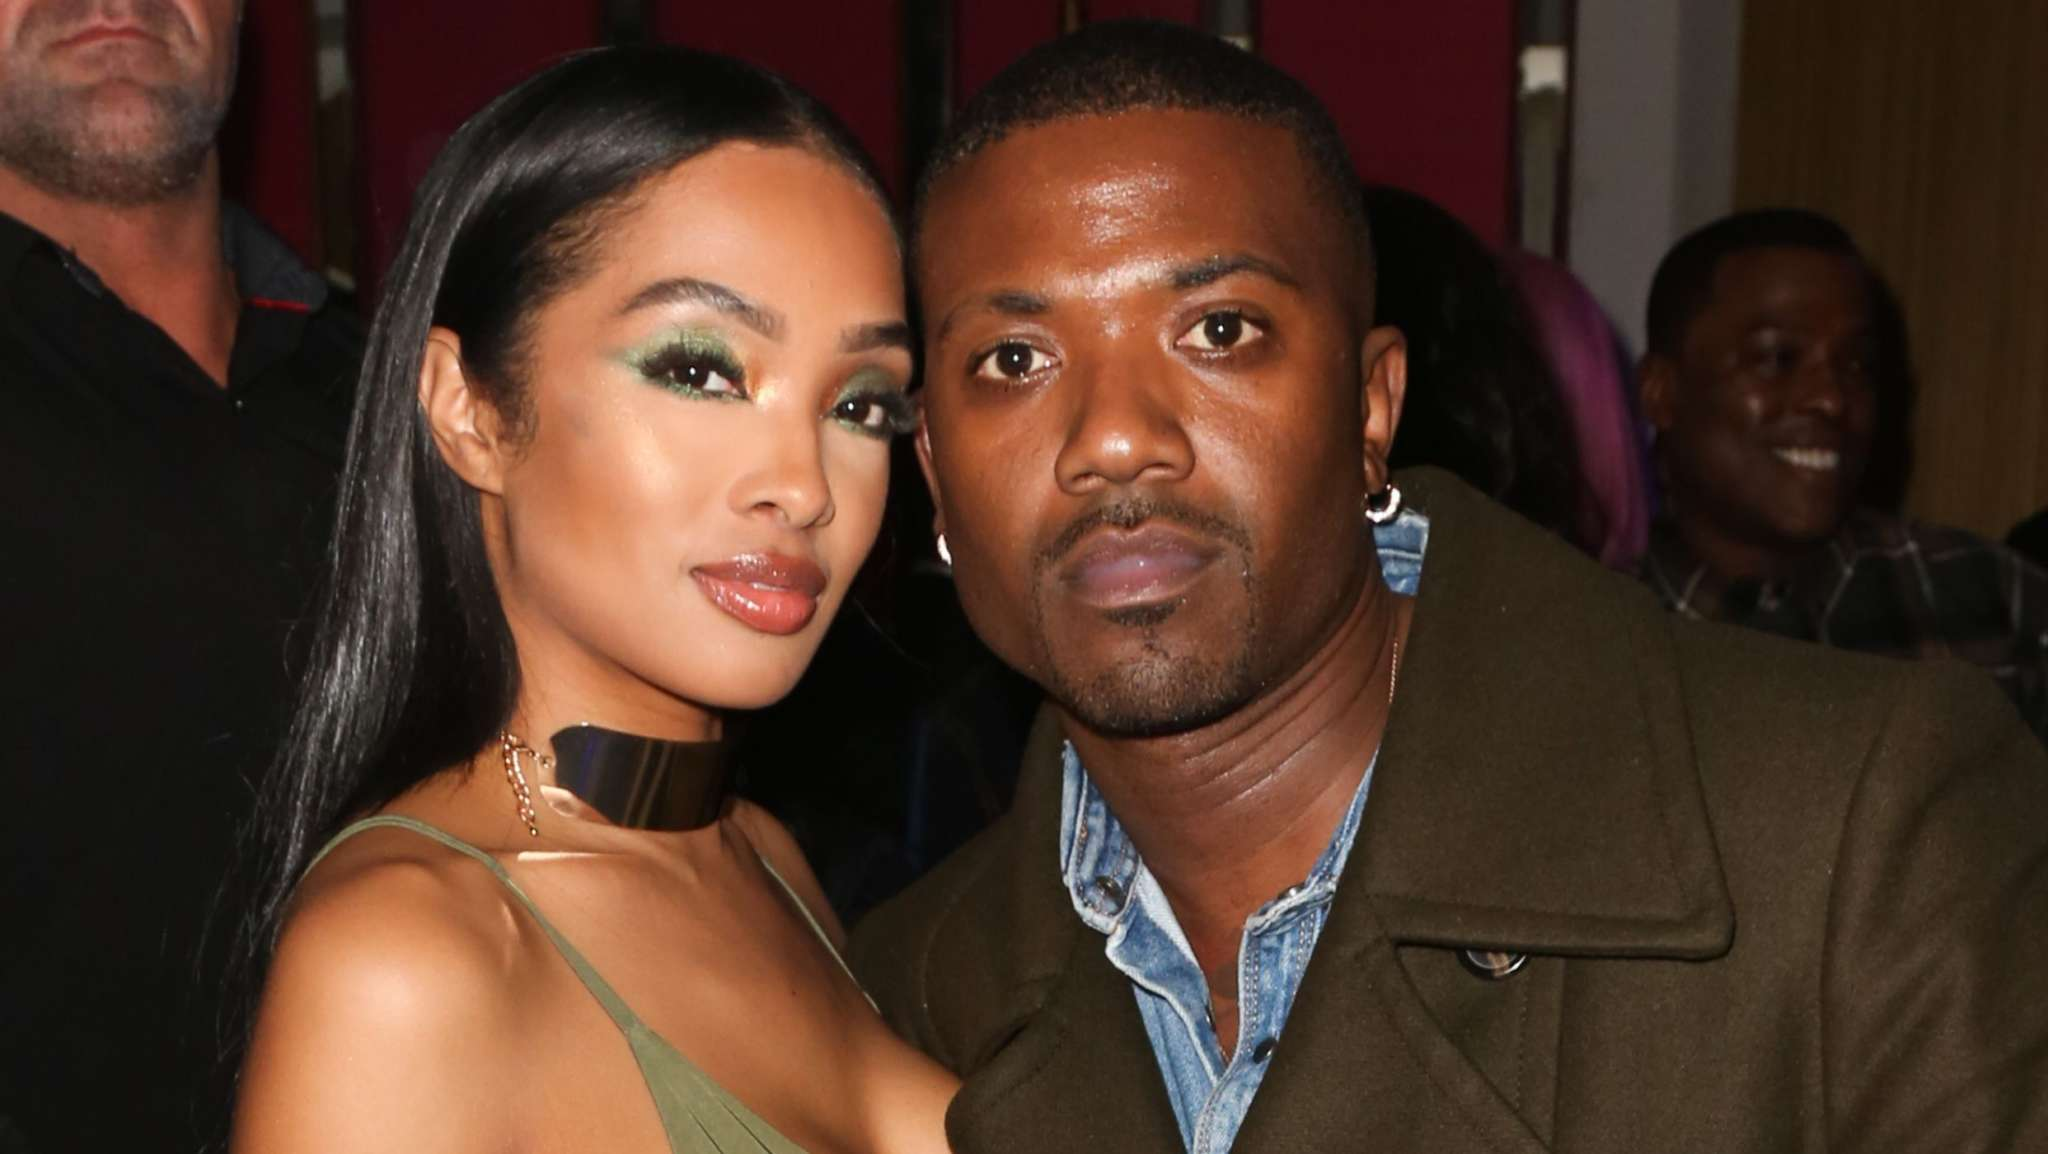 Ray J Addresses His Failed Relationship And Thanks His Mother For Support